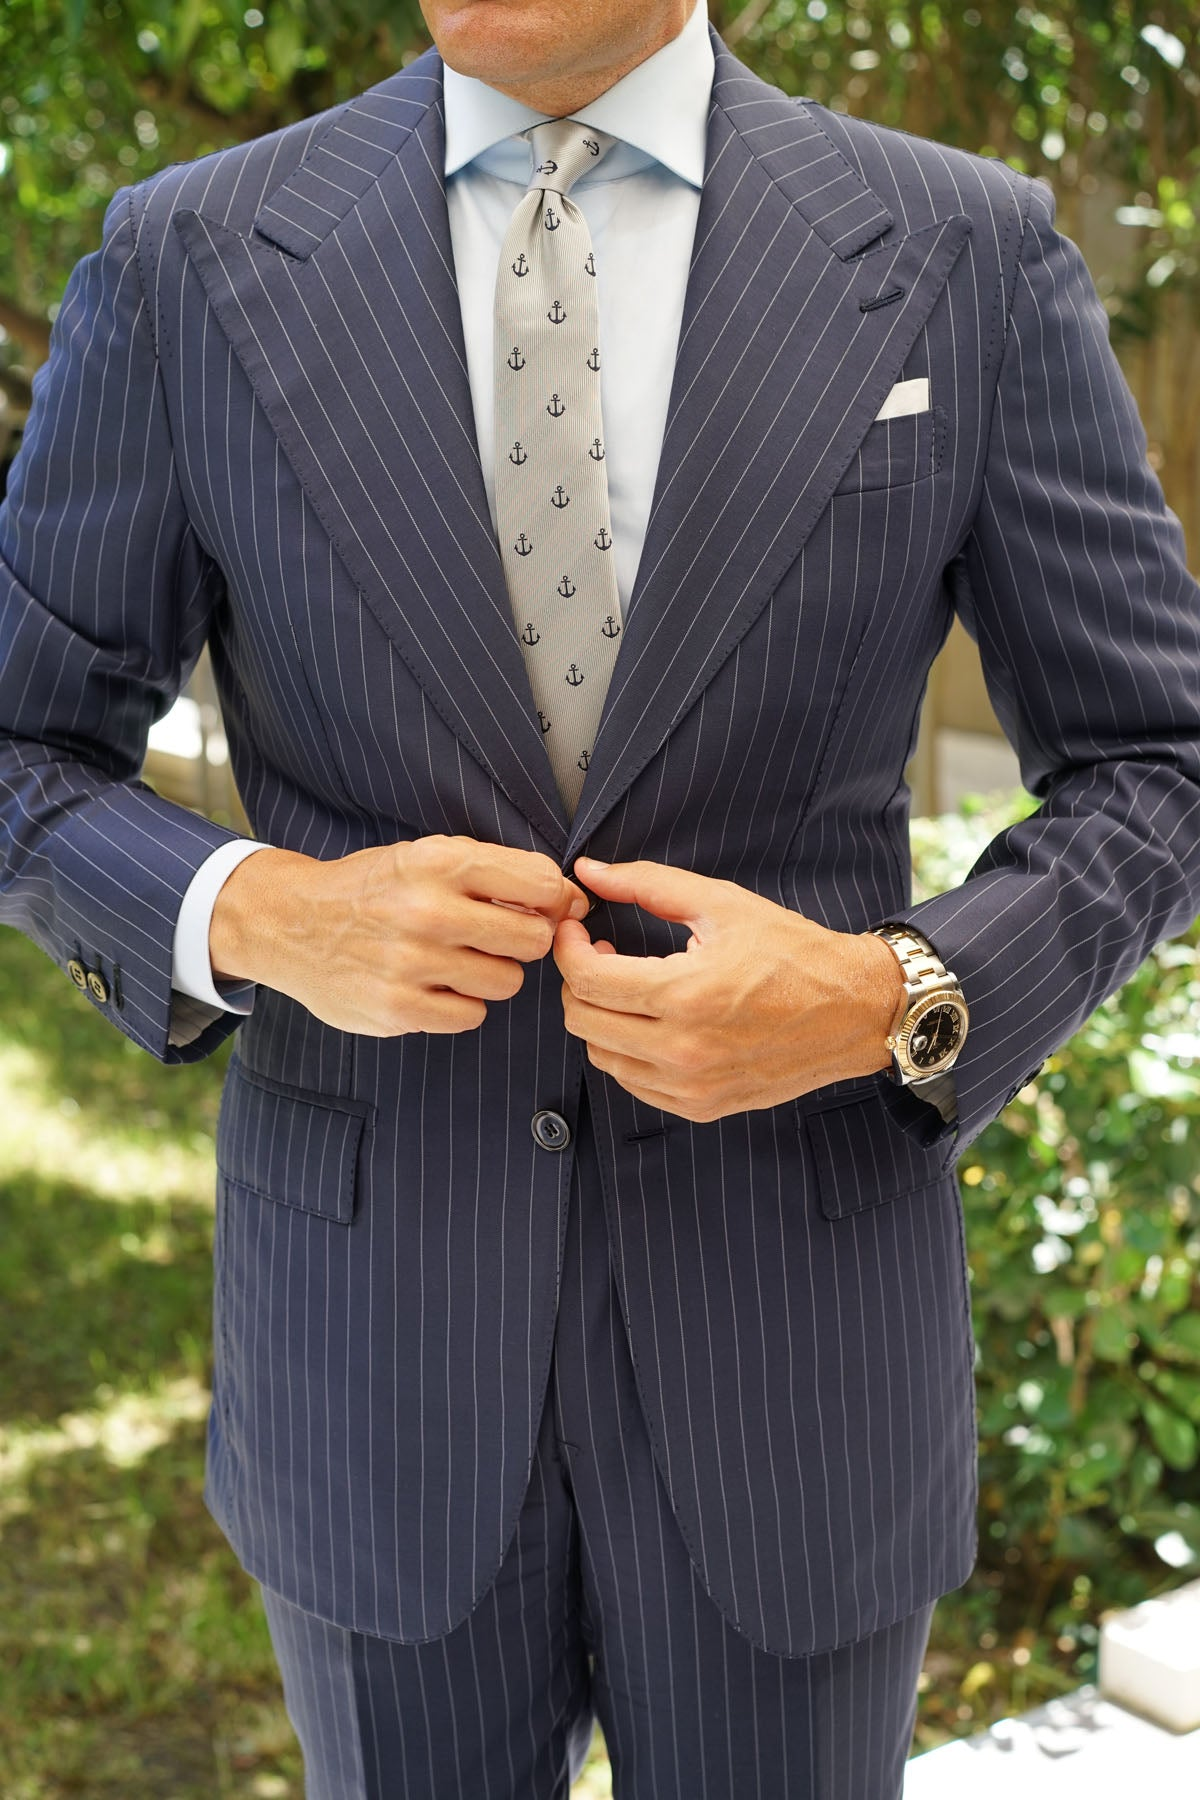 The OTAA Light Grey with Navy Blue Anchors Skinny Tie